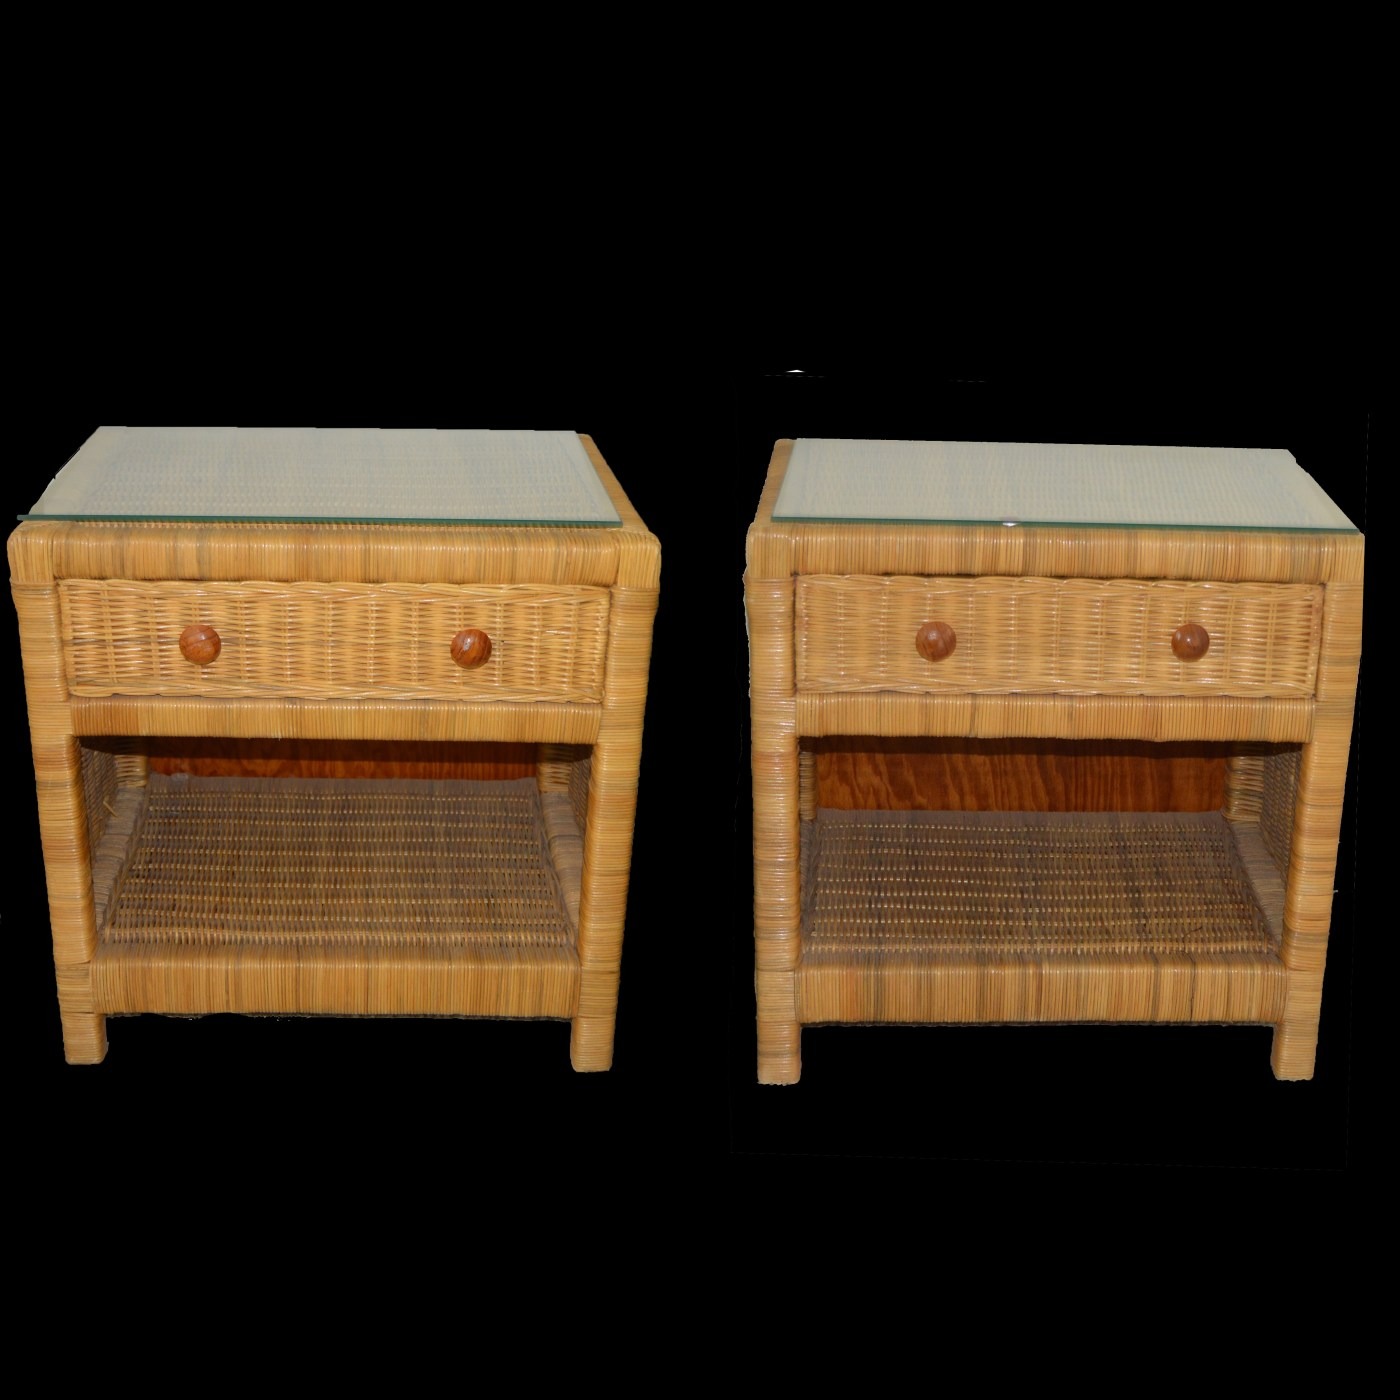 Pair of Rattan Wicker Nightstands : EBTH